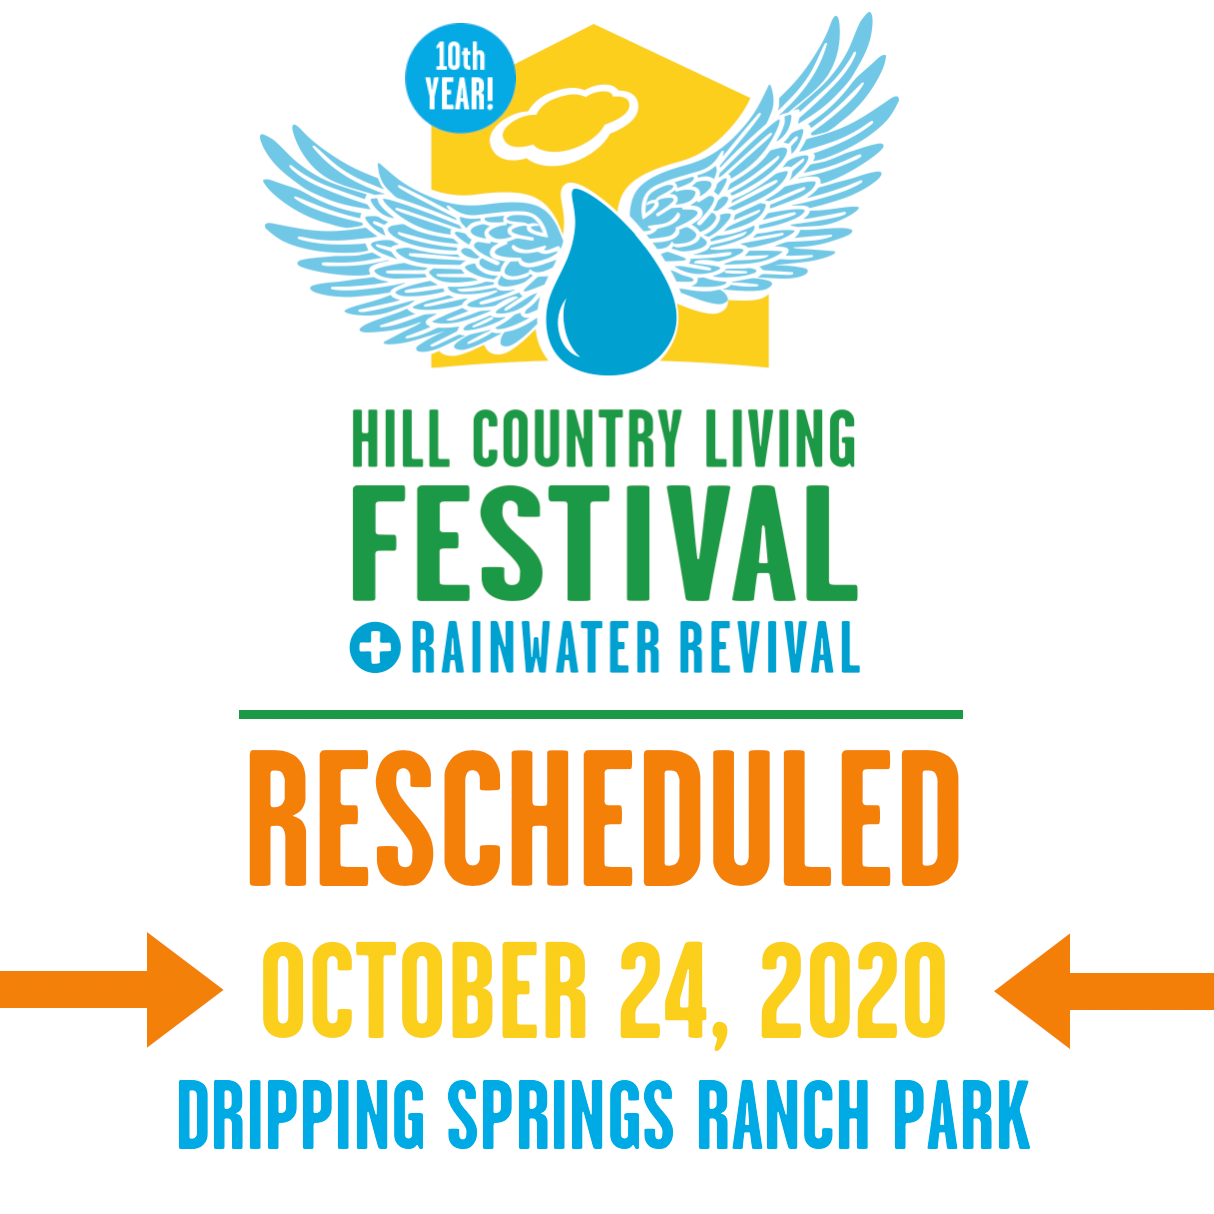 Important Update: Hill Country Living FESTIVAL Rescheduled for October 24, 2020